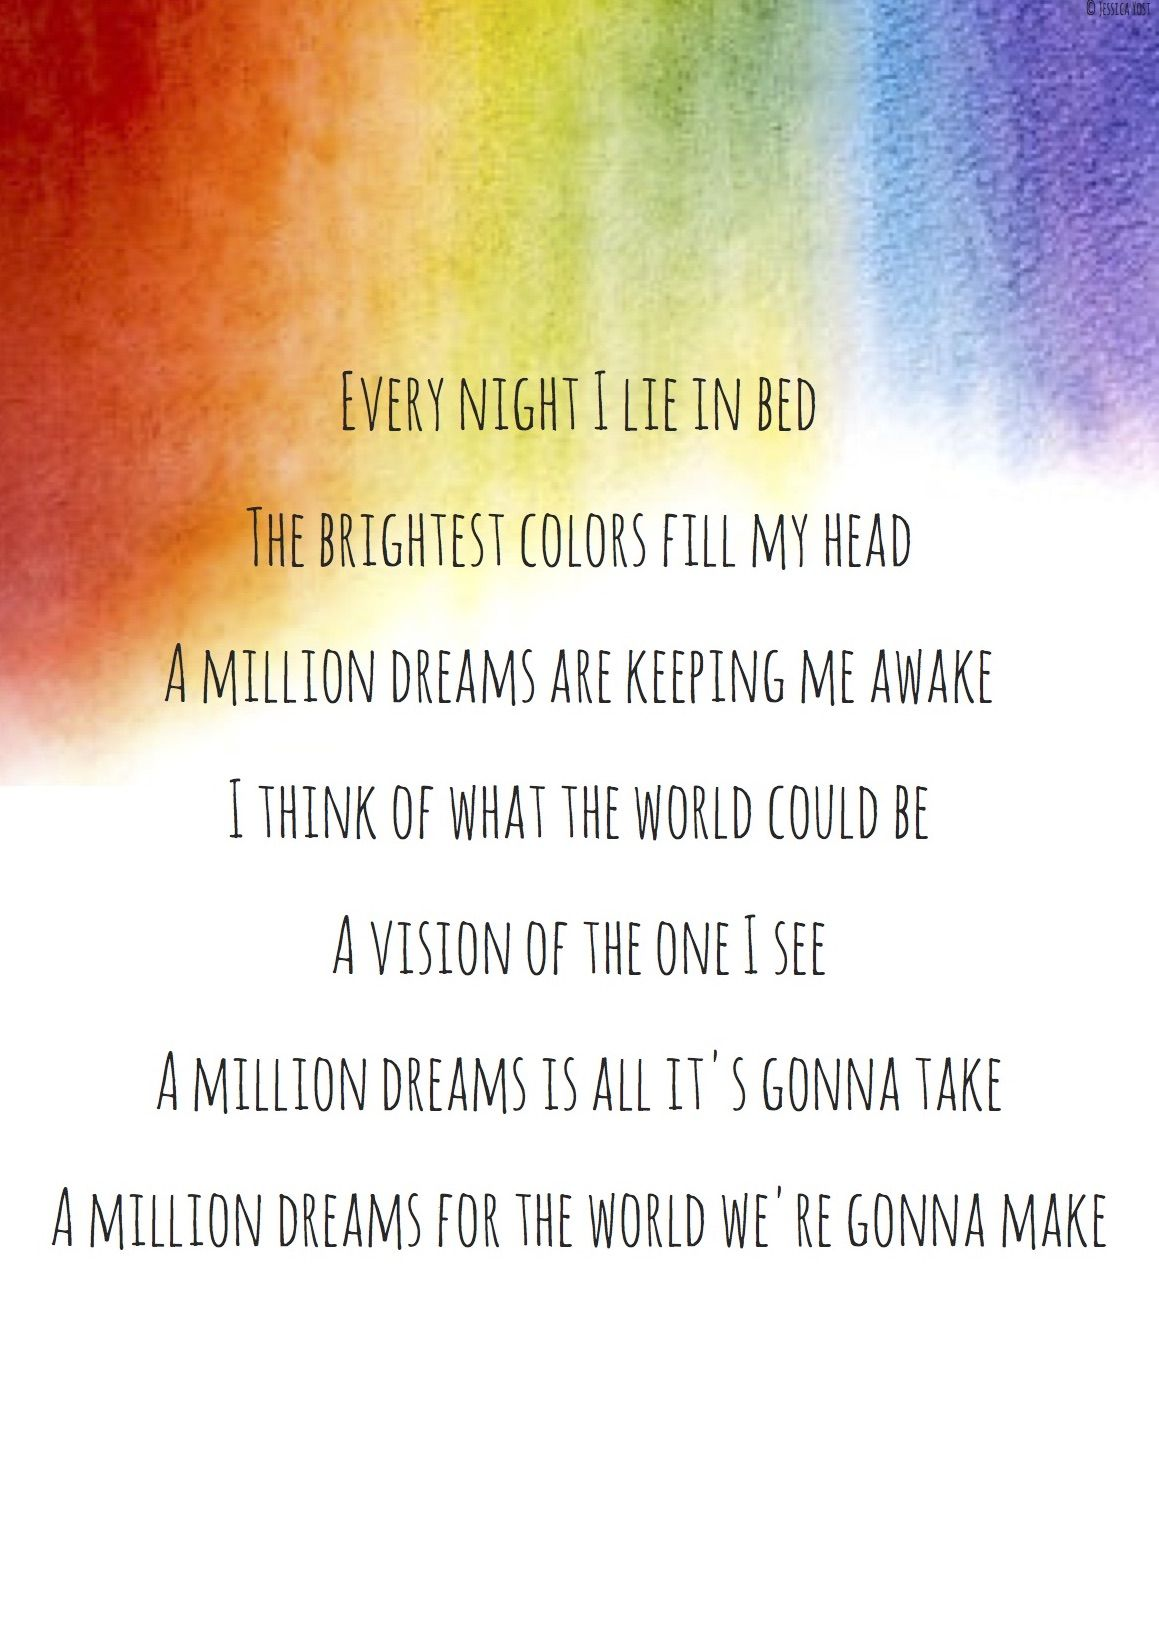 a million dreams lyrics